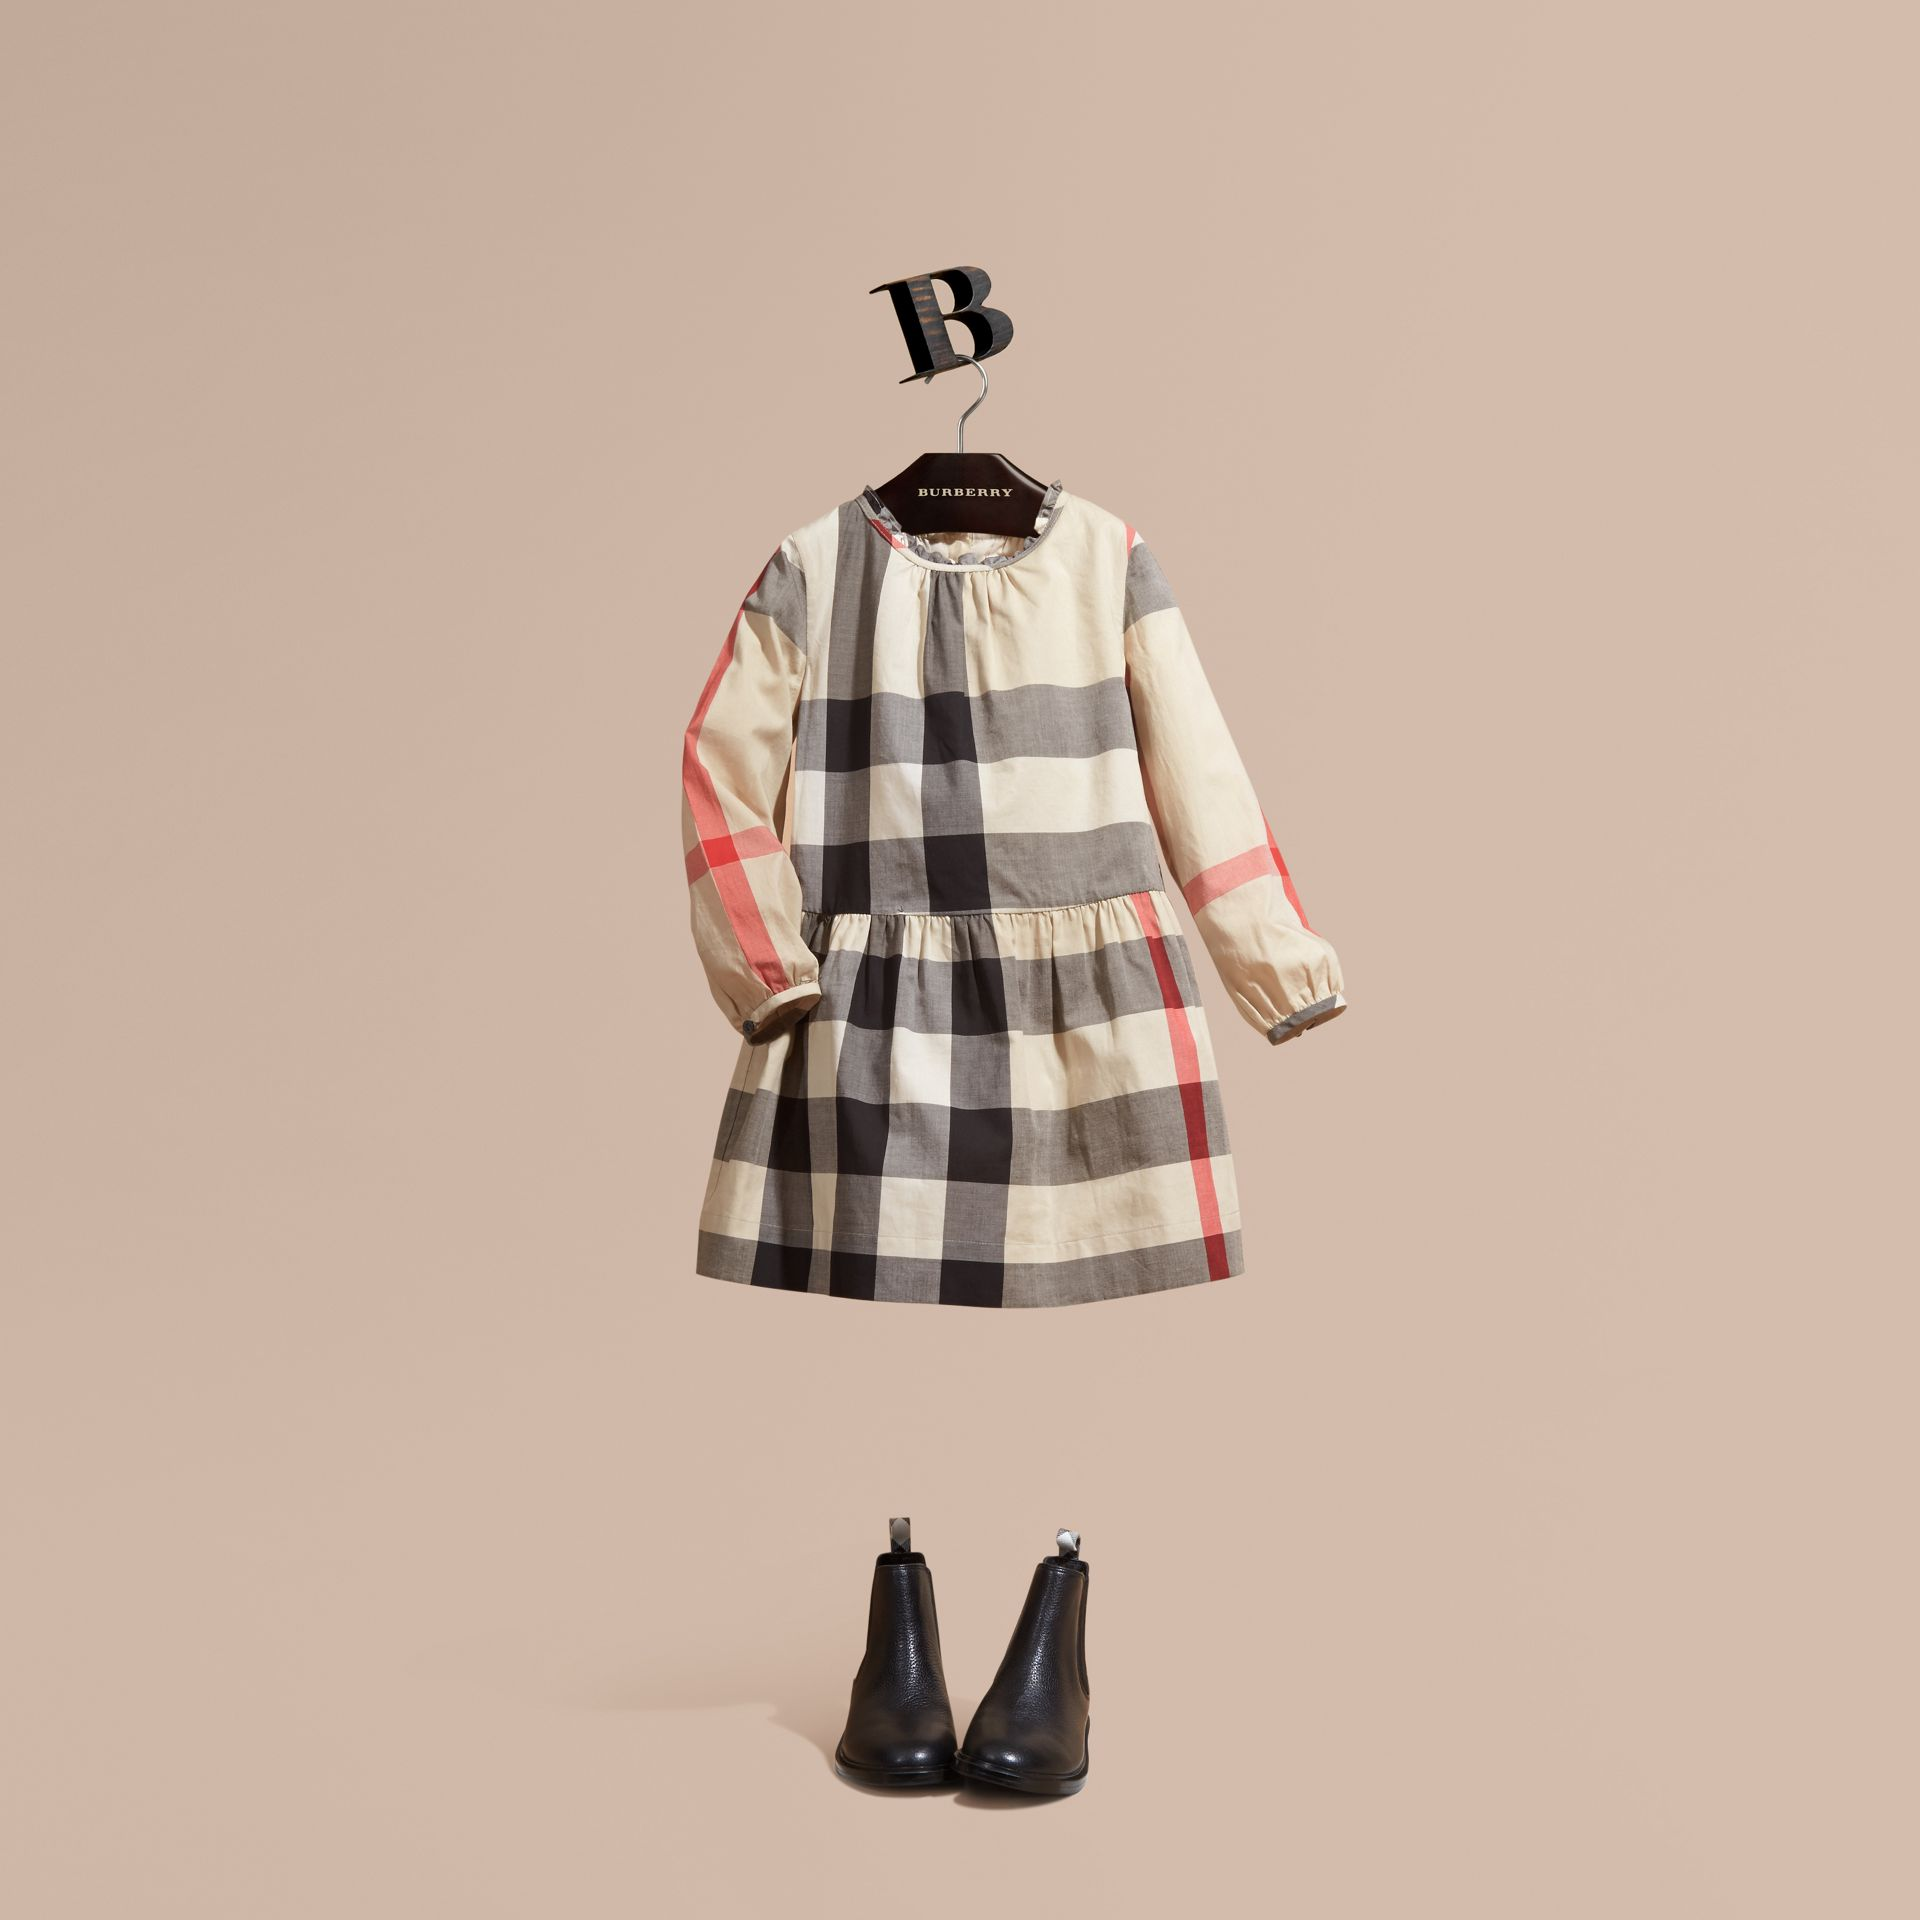 New classic check Check Cotton Dress with Ruffle Detail New Classic - gallery image 1